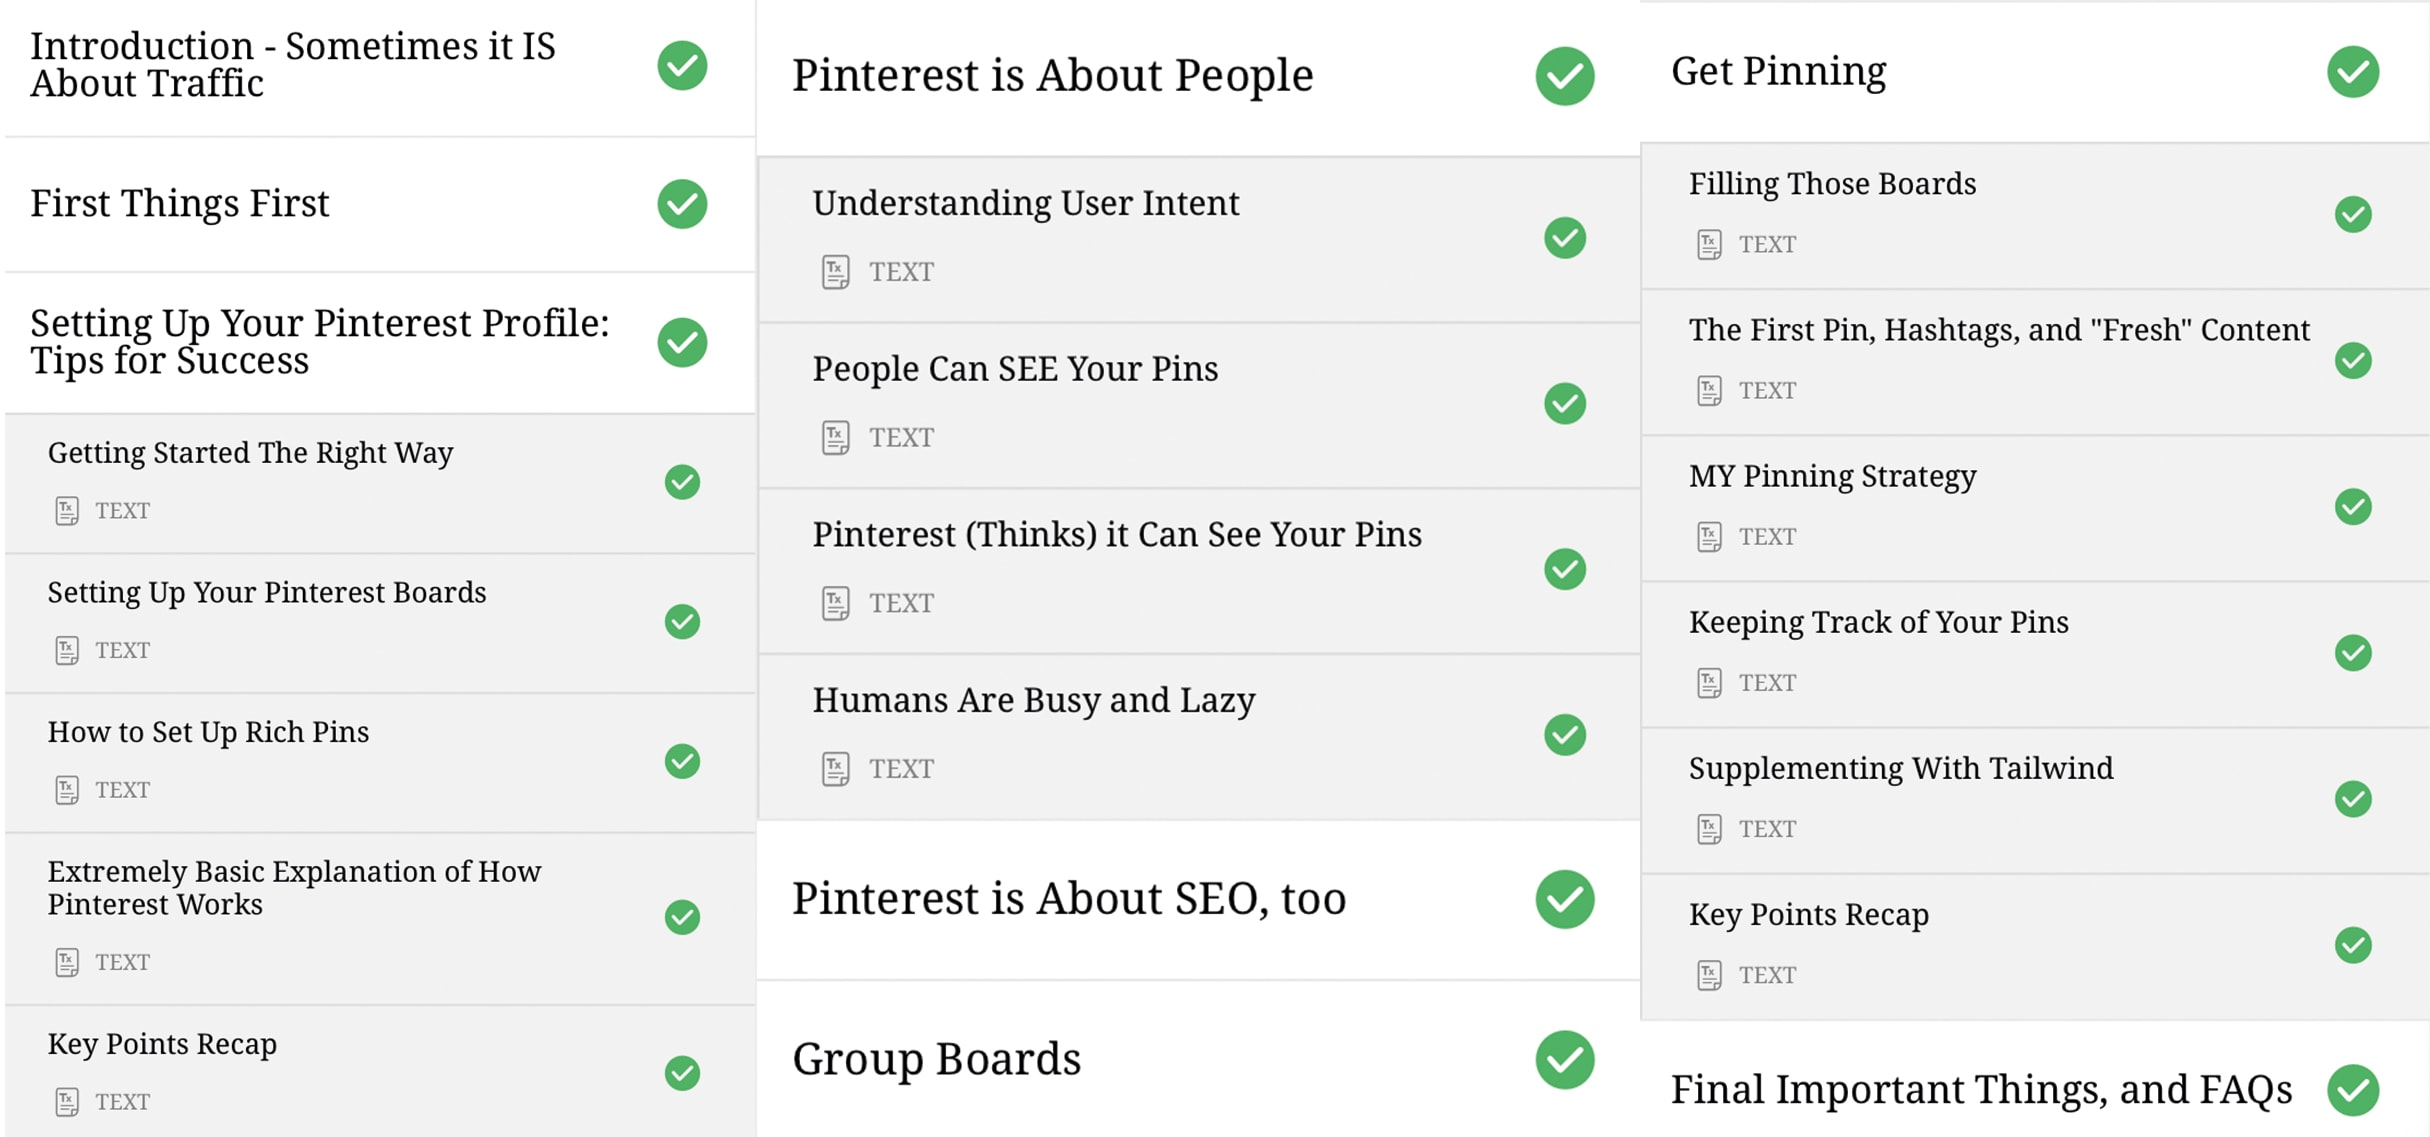 Pinteresting Strategies Review - The best value Pinterest course out there. Here are my results #pinterest #trafficgrowth #pinterestcourse